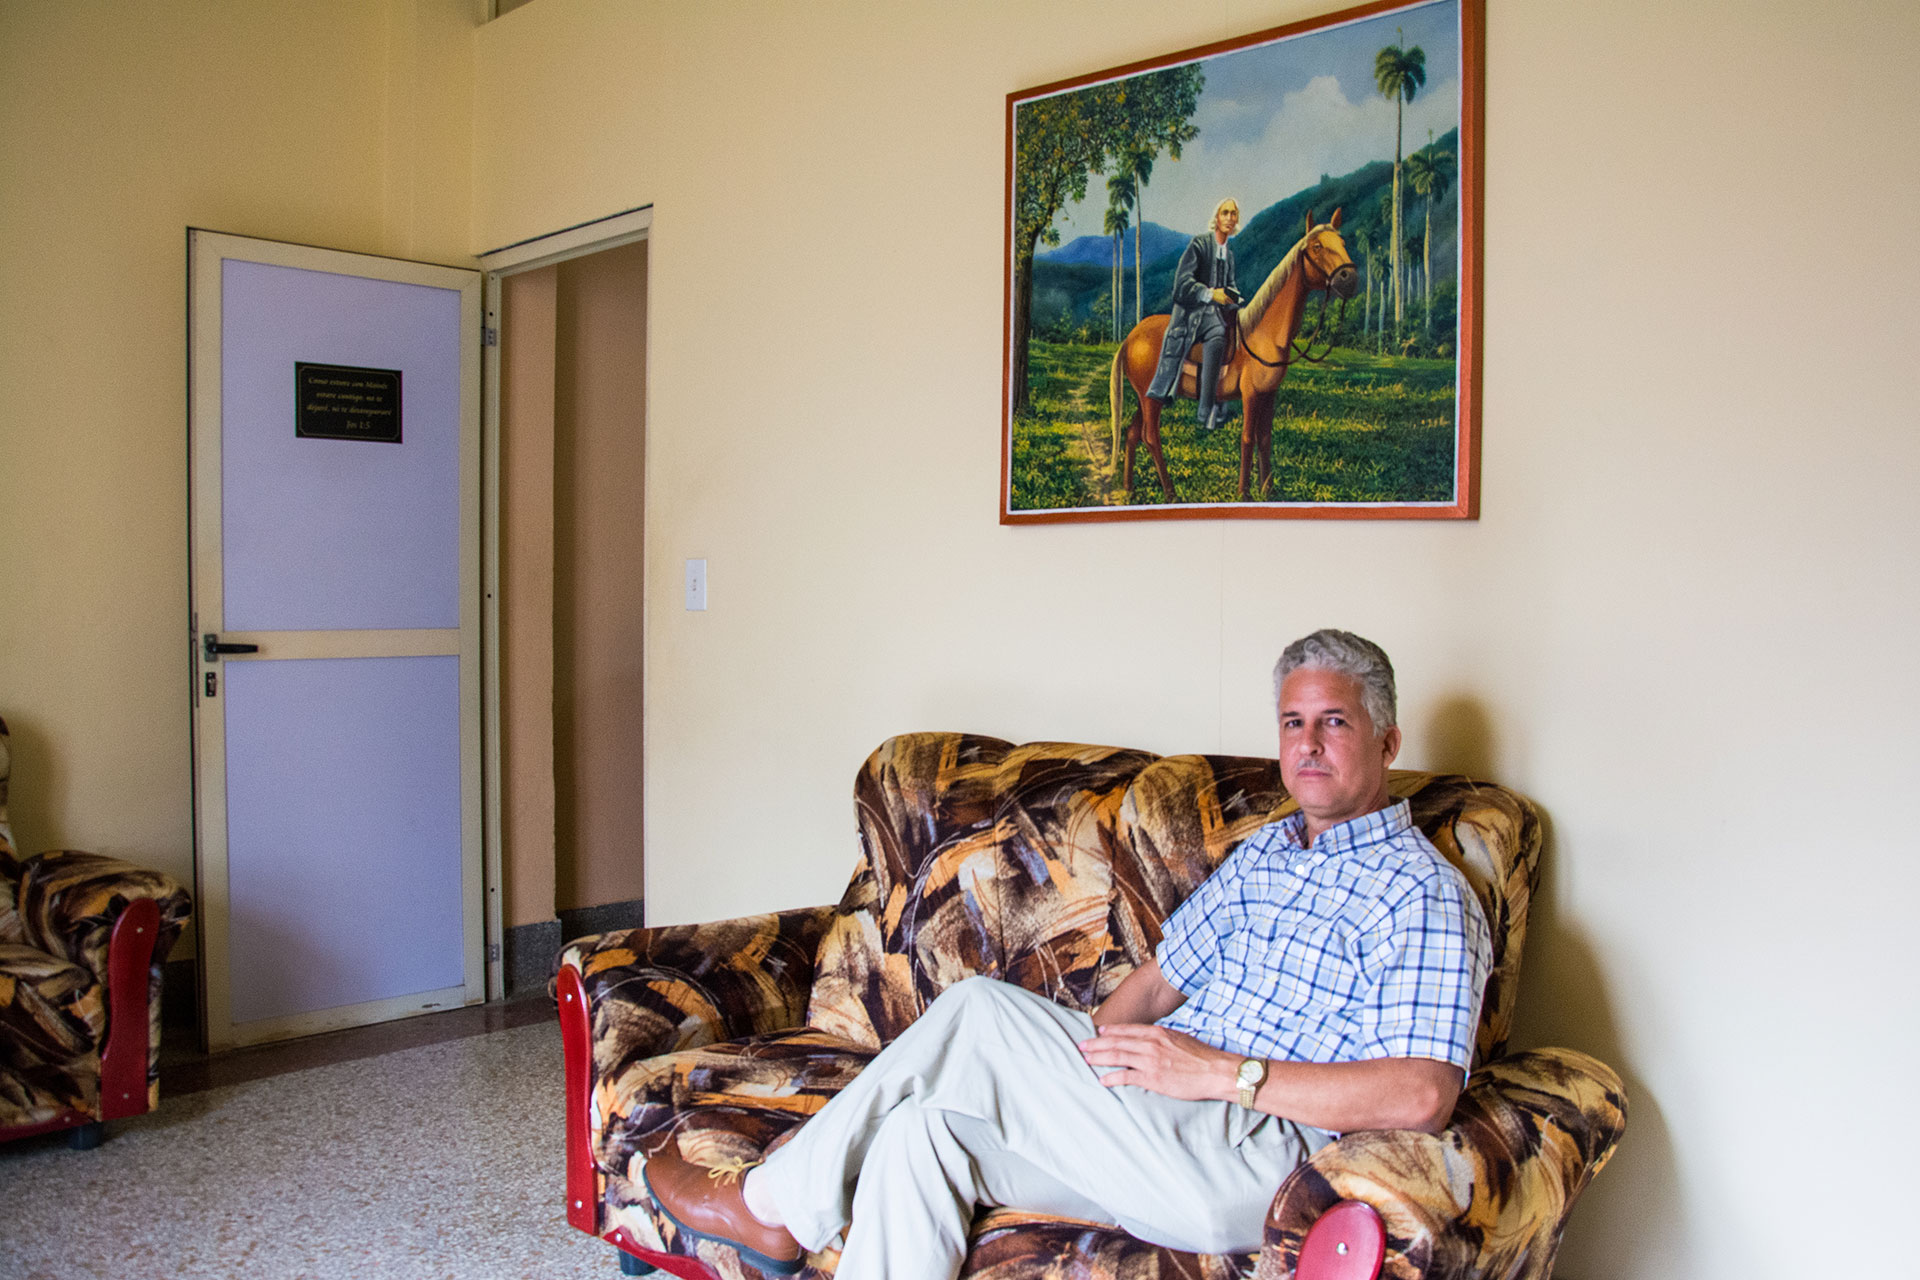 Rev. Enoel Gutierrez poses for a portrait March 6, 2019, at Seminario Evangelico Metodista in Havana, Cuba. Gutierrez commissioned a painting for his office of the Methodist leader from the 18th century, John Wesly, on horseback in Cuba. Rev. Gutierrez is part of the country's growing evangelical community. (Photo by Story Hinckley/GroundTruth)